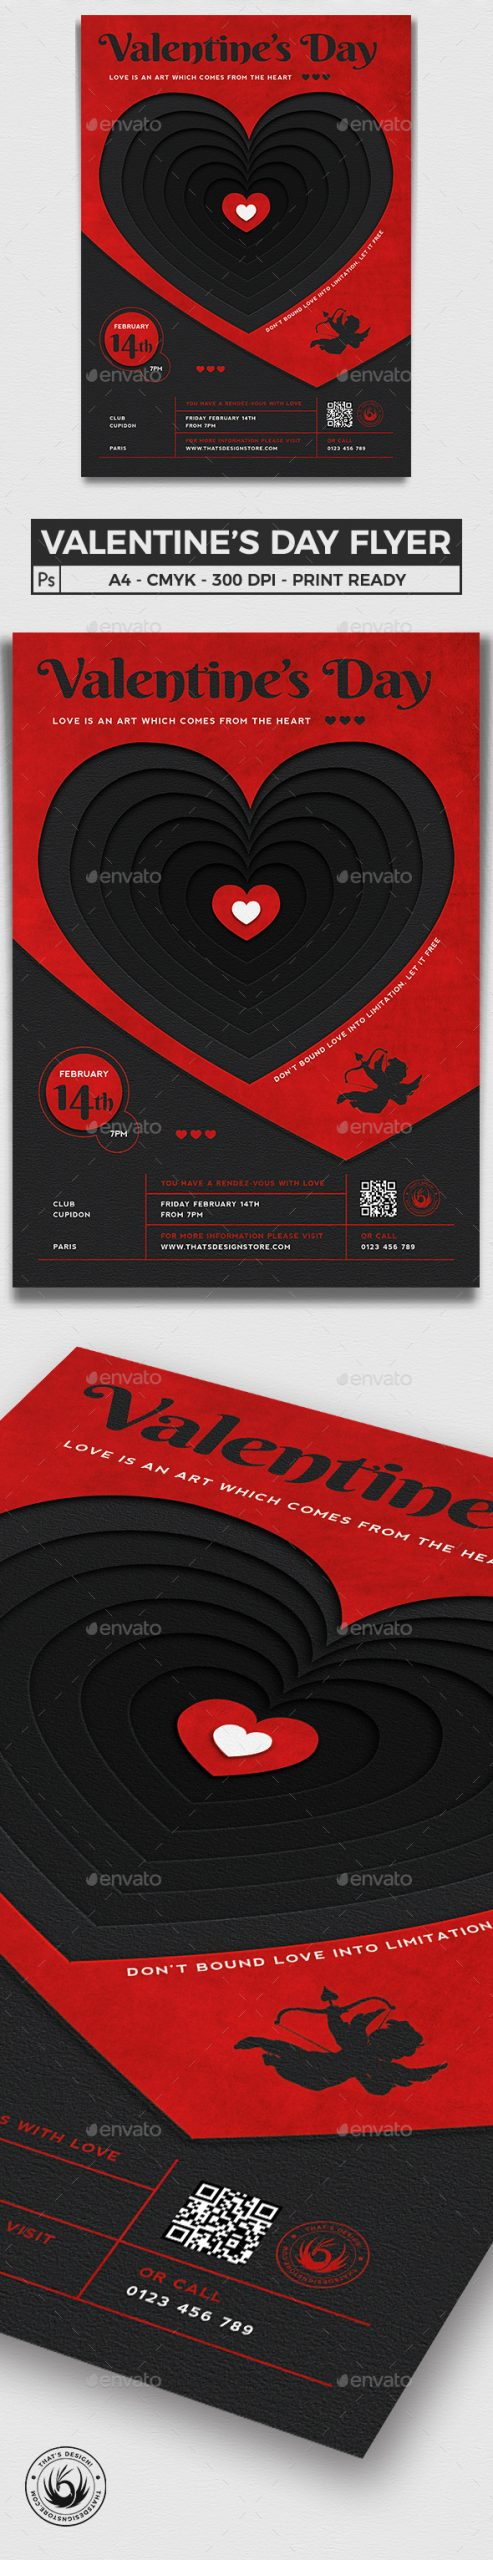 Flyers PSD – Valentines Day Flyer Template V23 – Download